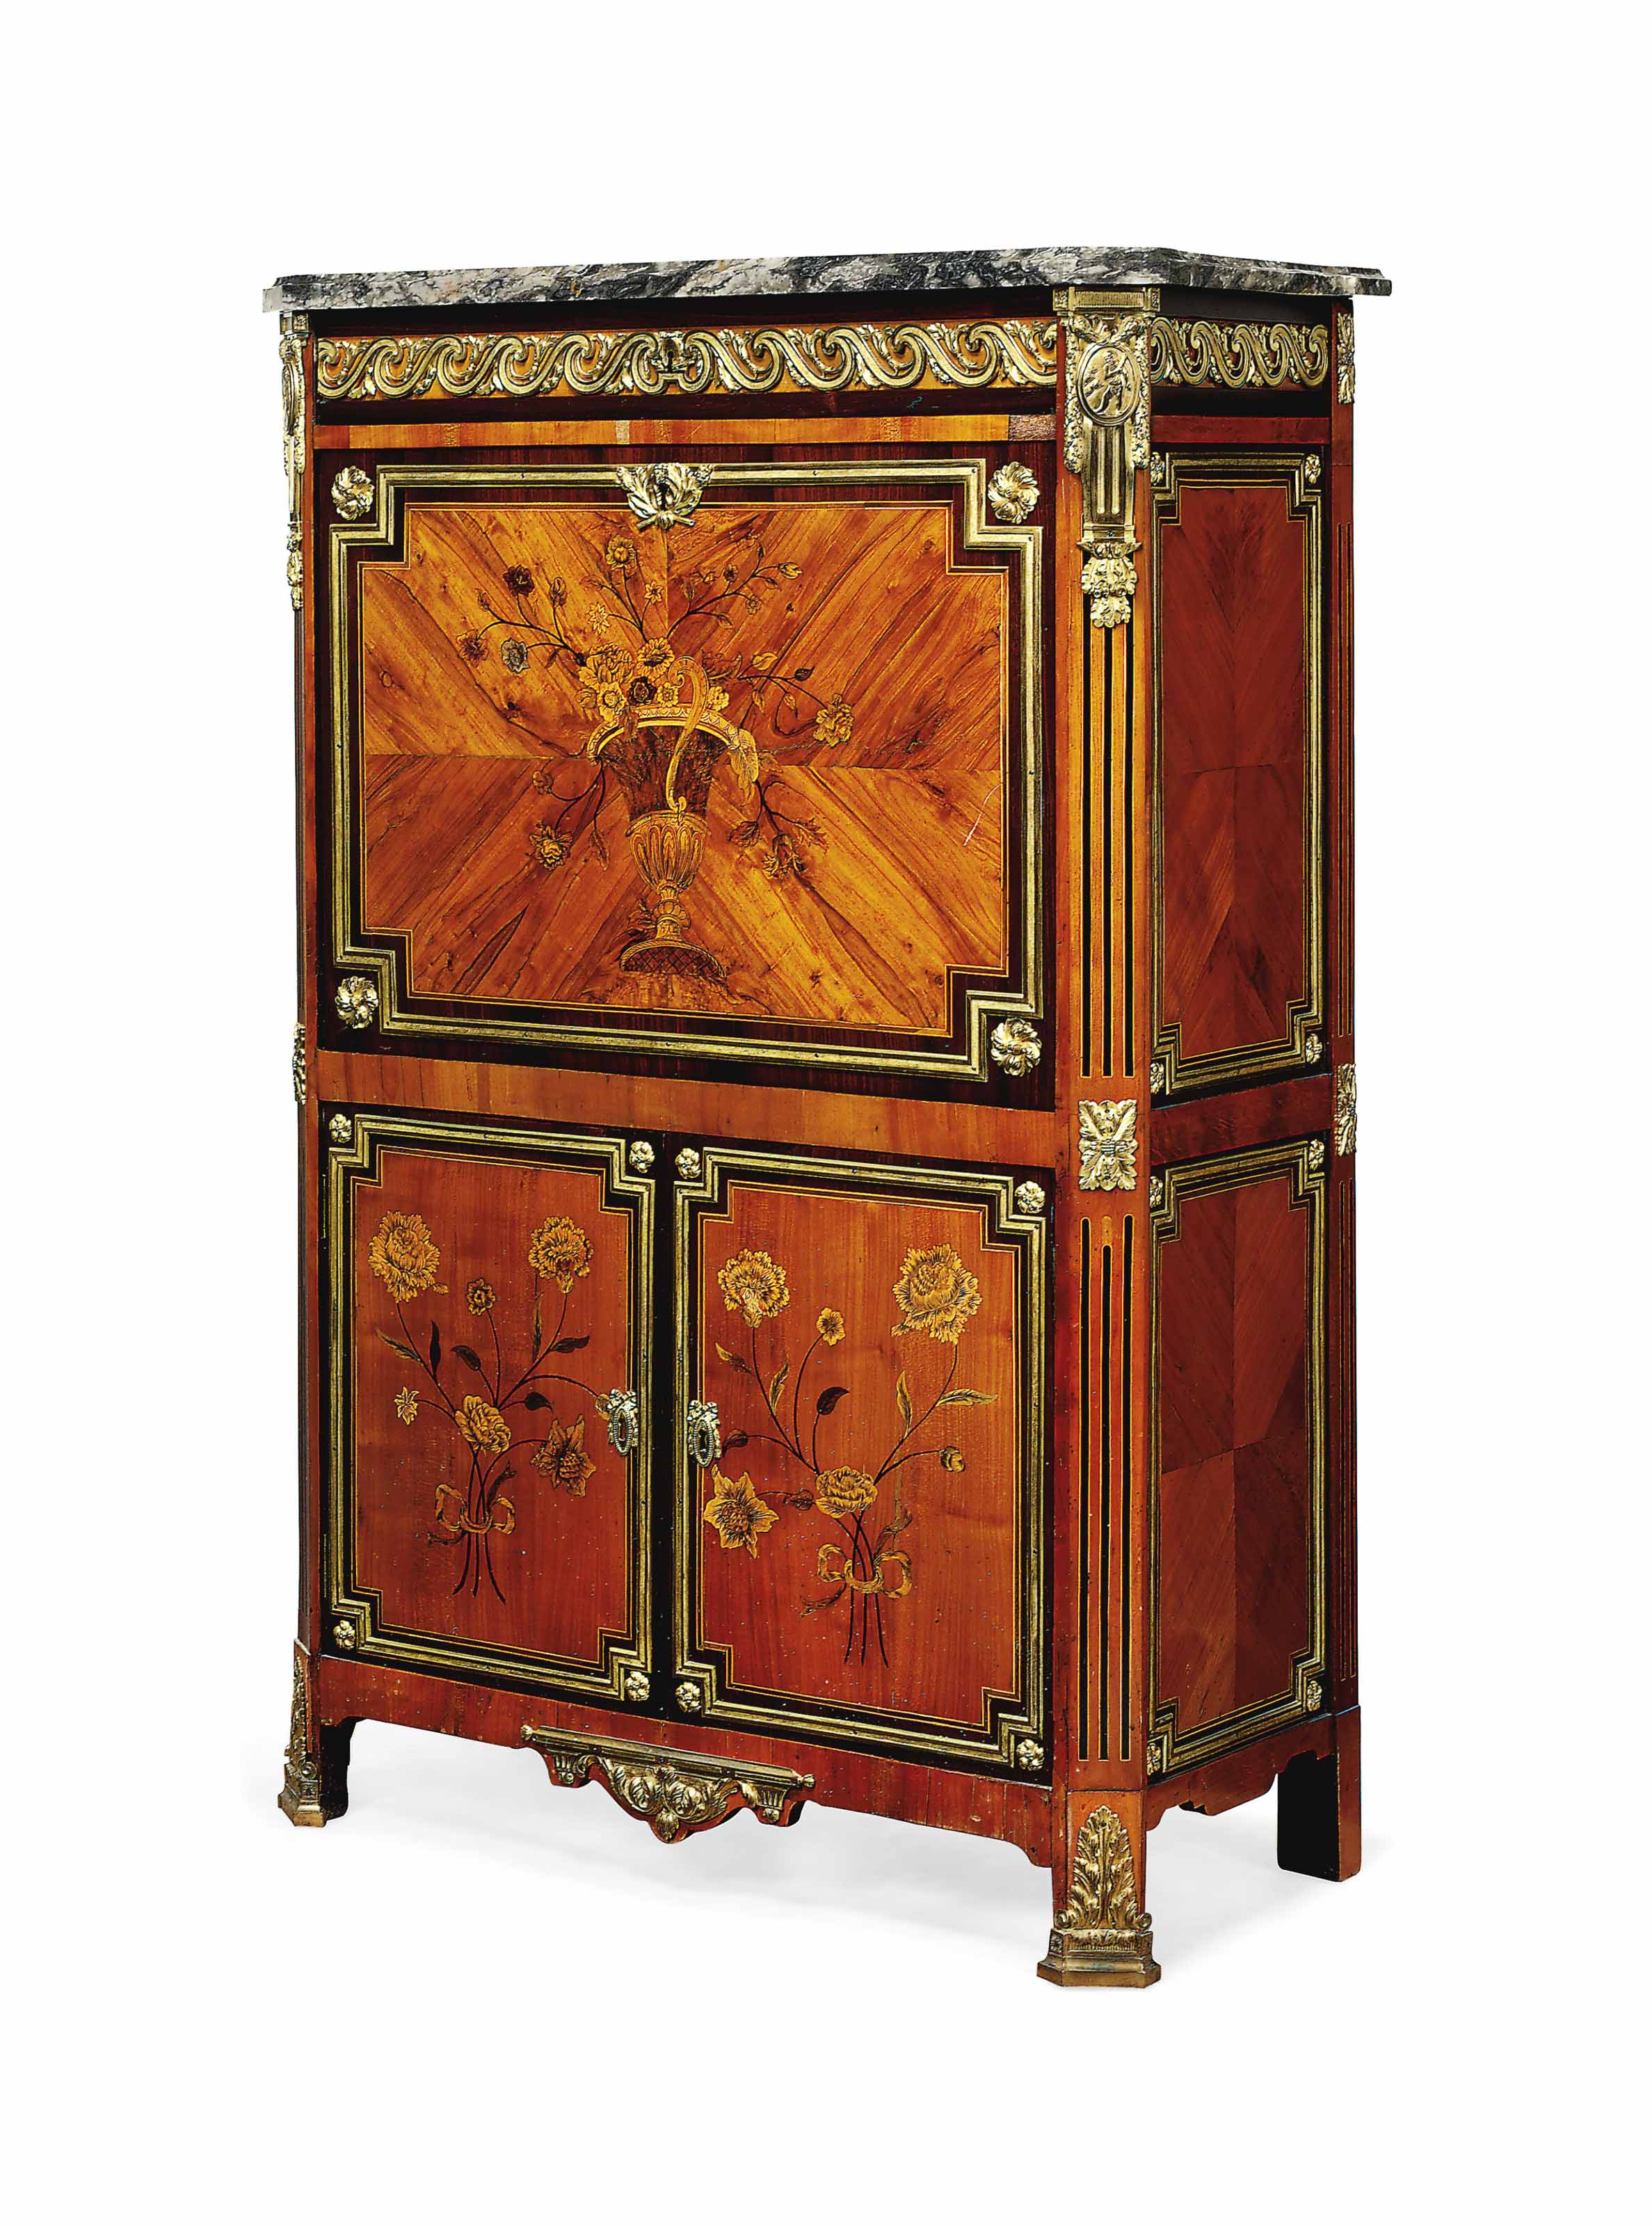 A FRENCH ORMOLU-MOUNTED FRUITWOOD AND MARQUETRY SECRETAIRE A ABATTANT